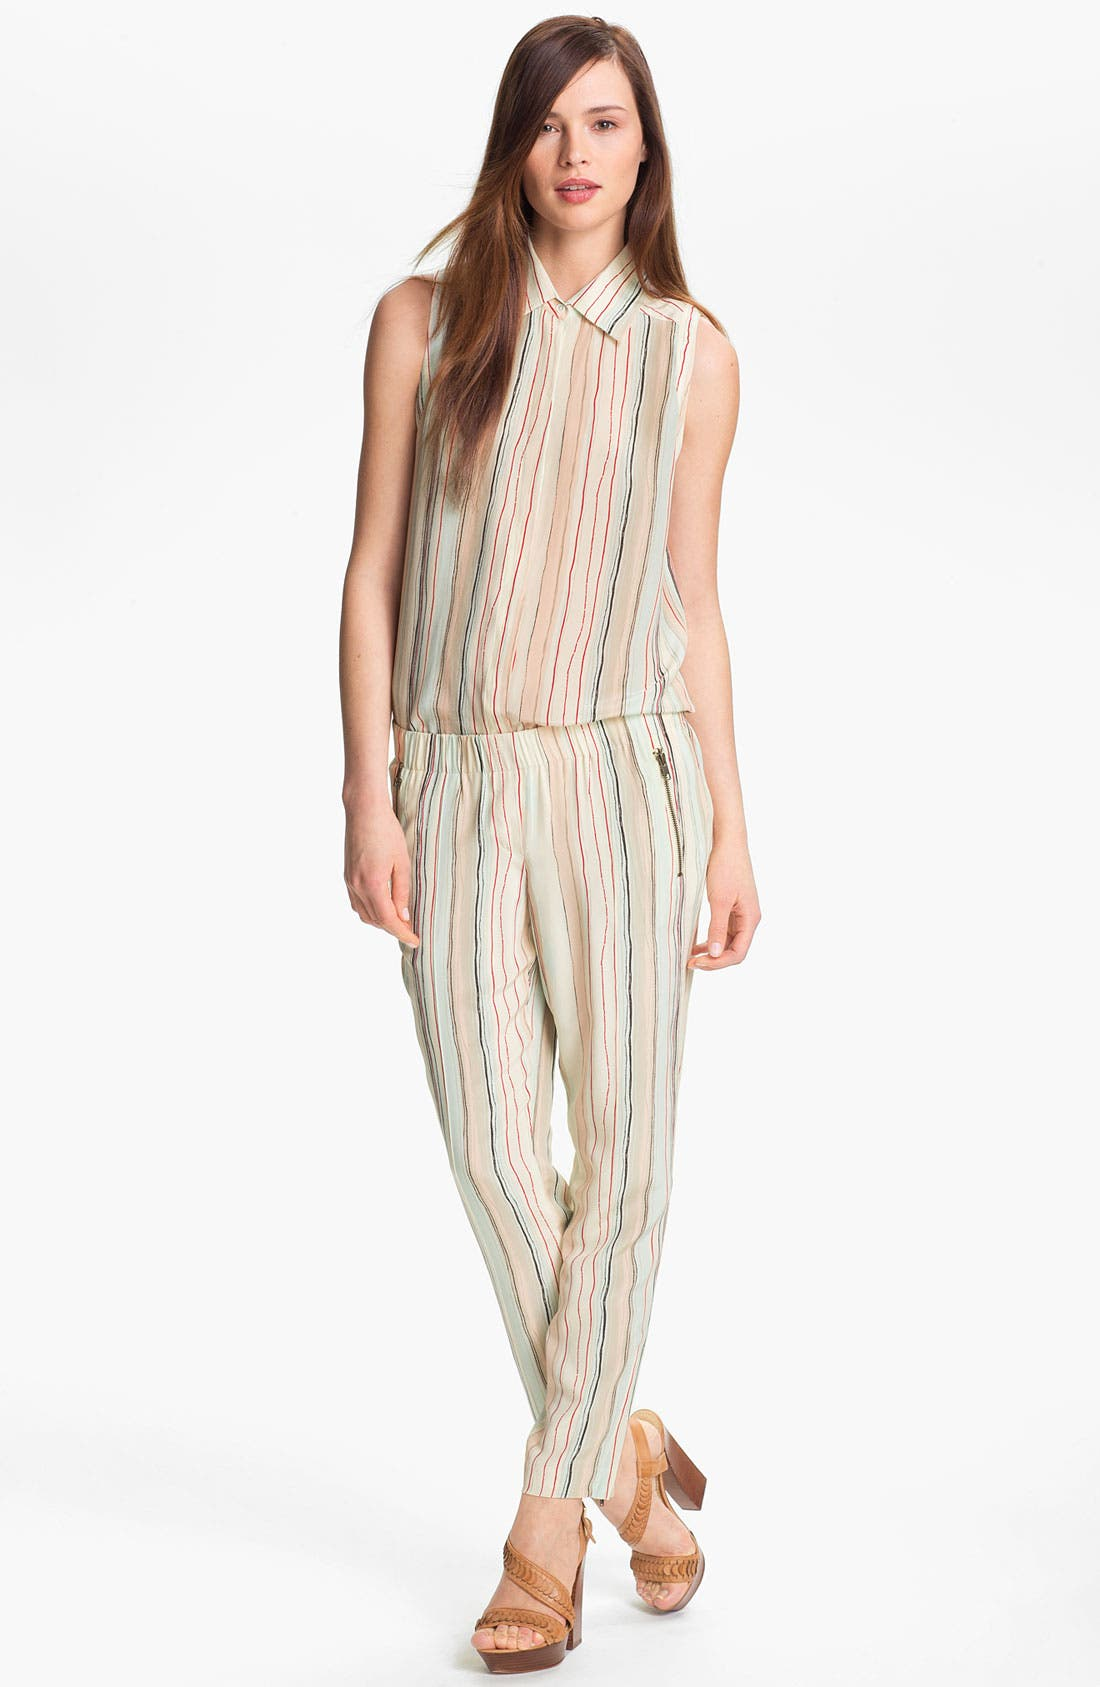 Main Image - Rachel Zoe 'Geri II' Sleeveless Shirt